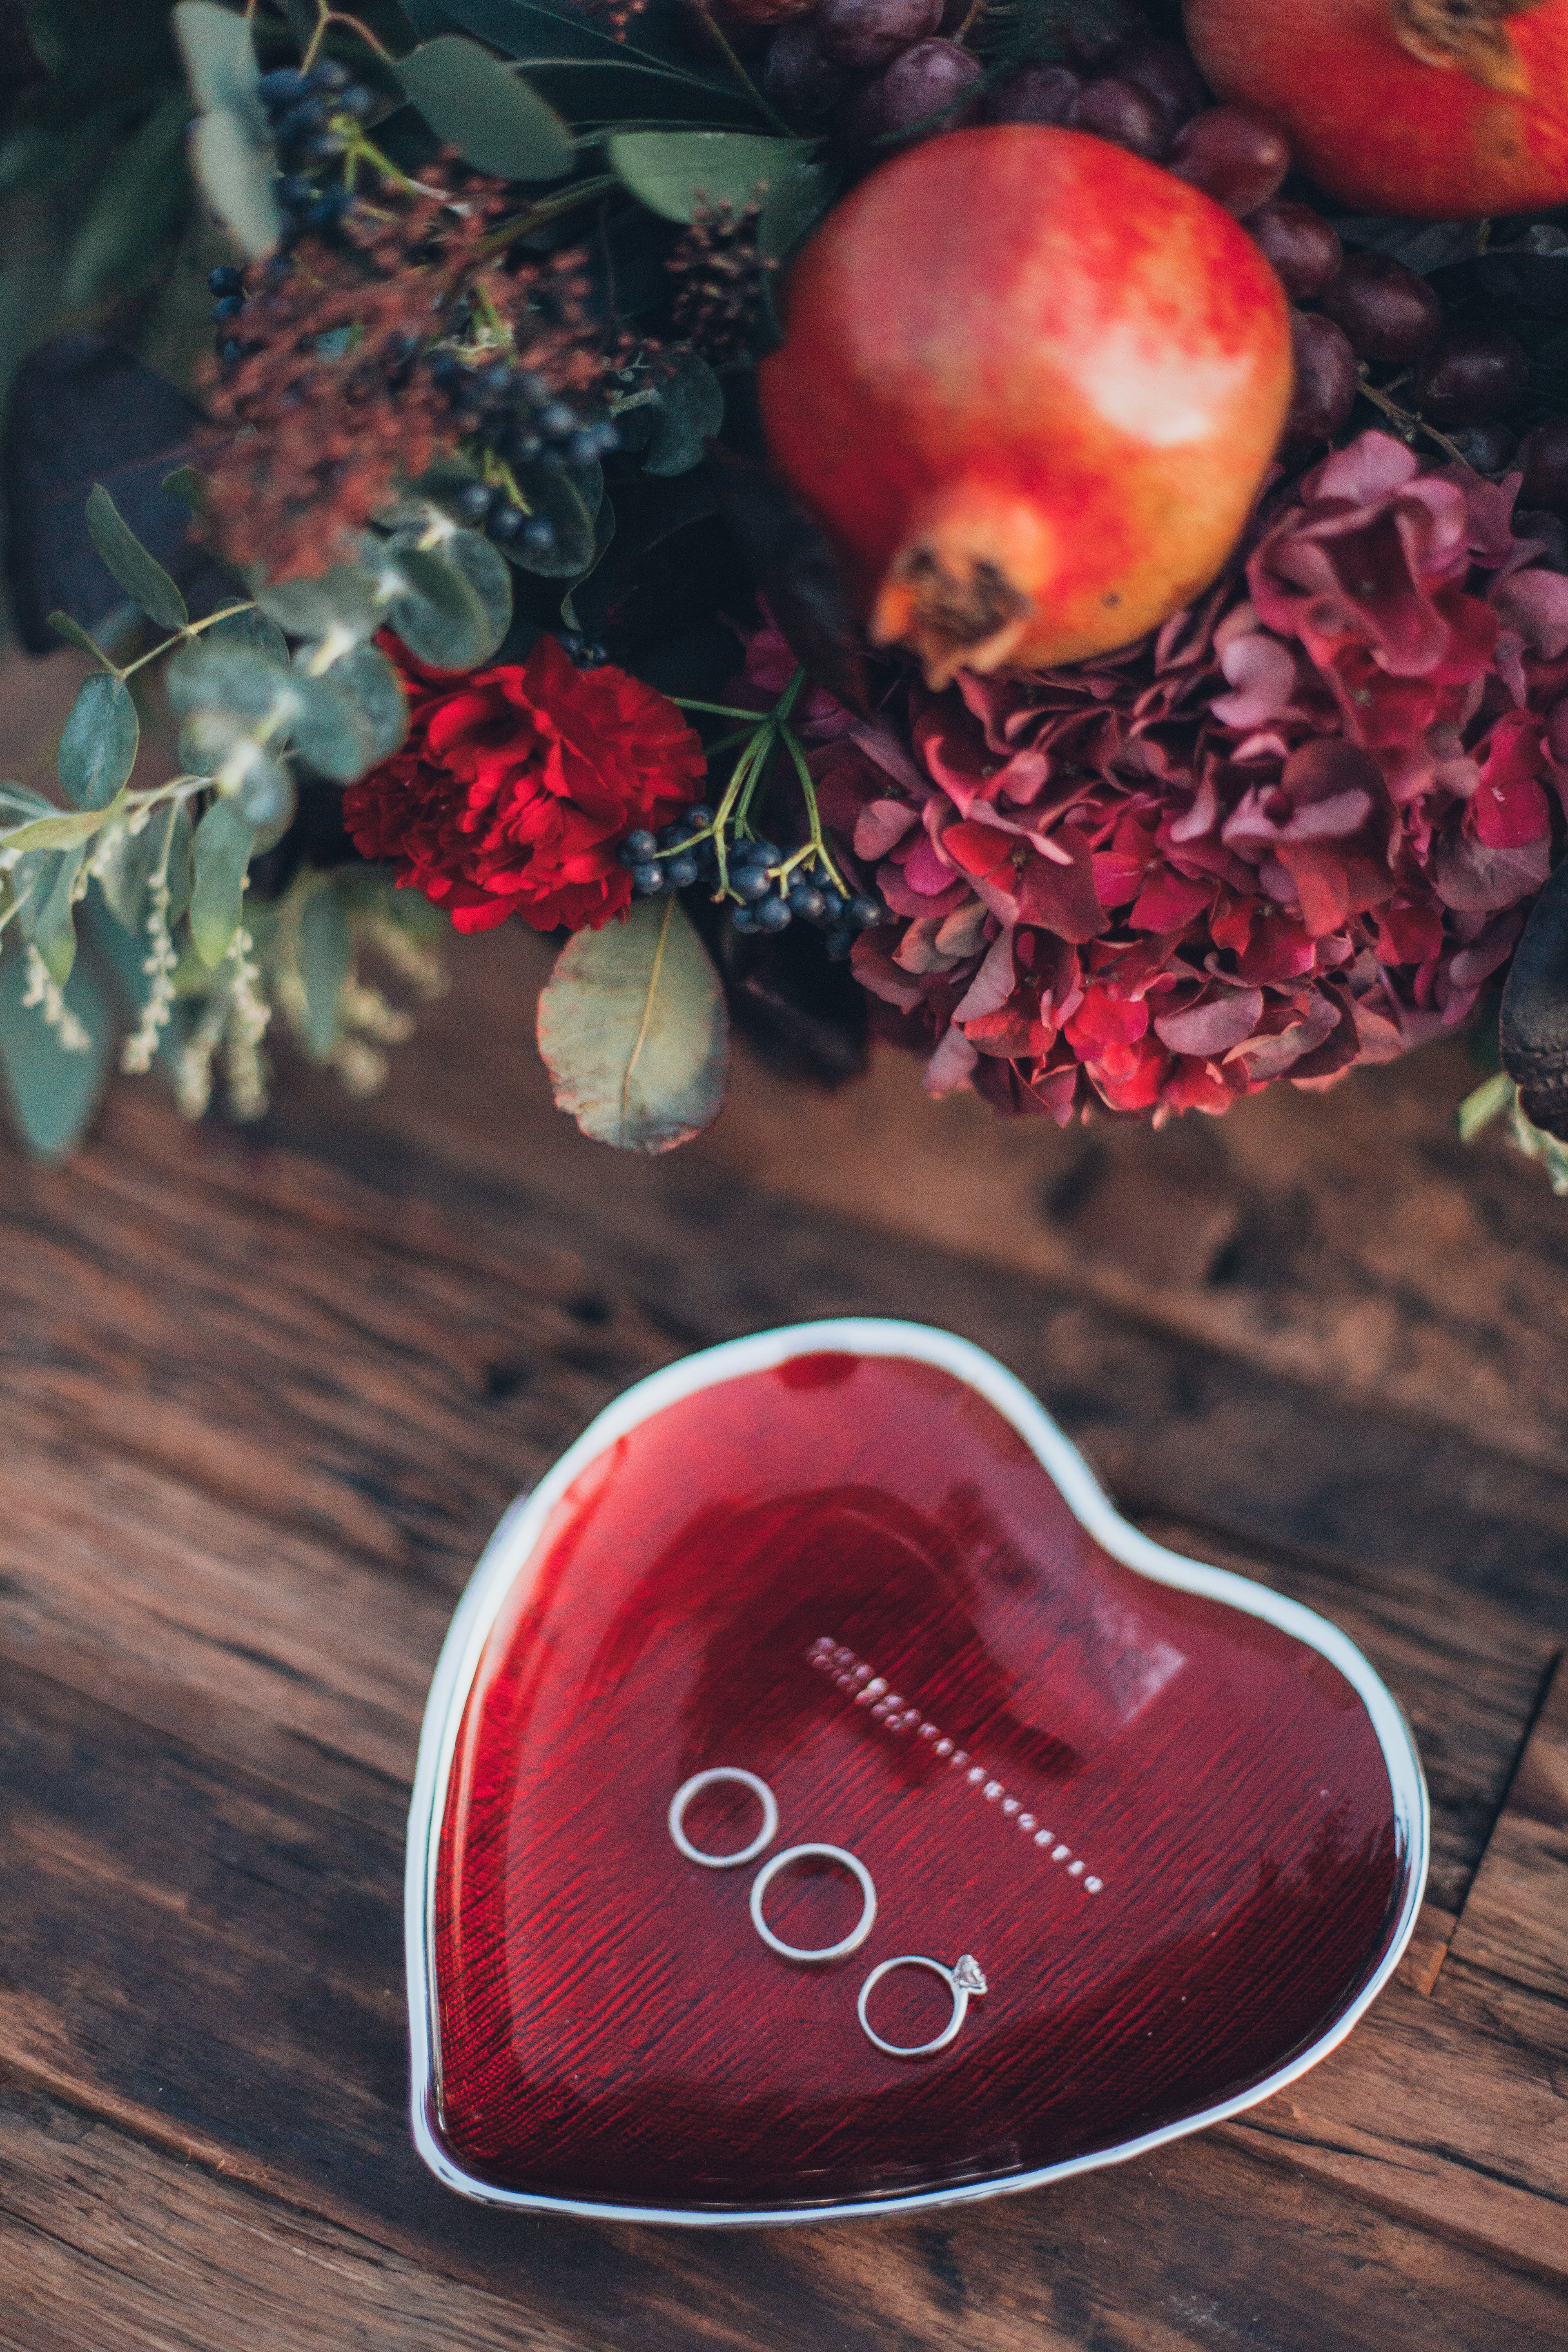 Heart-shaped Red and White Ceramic Saucer